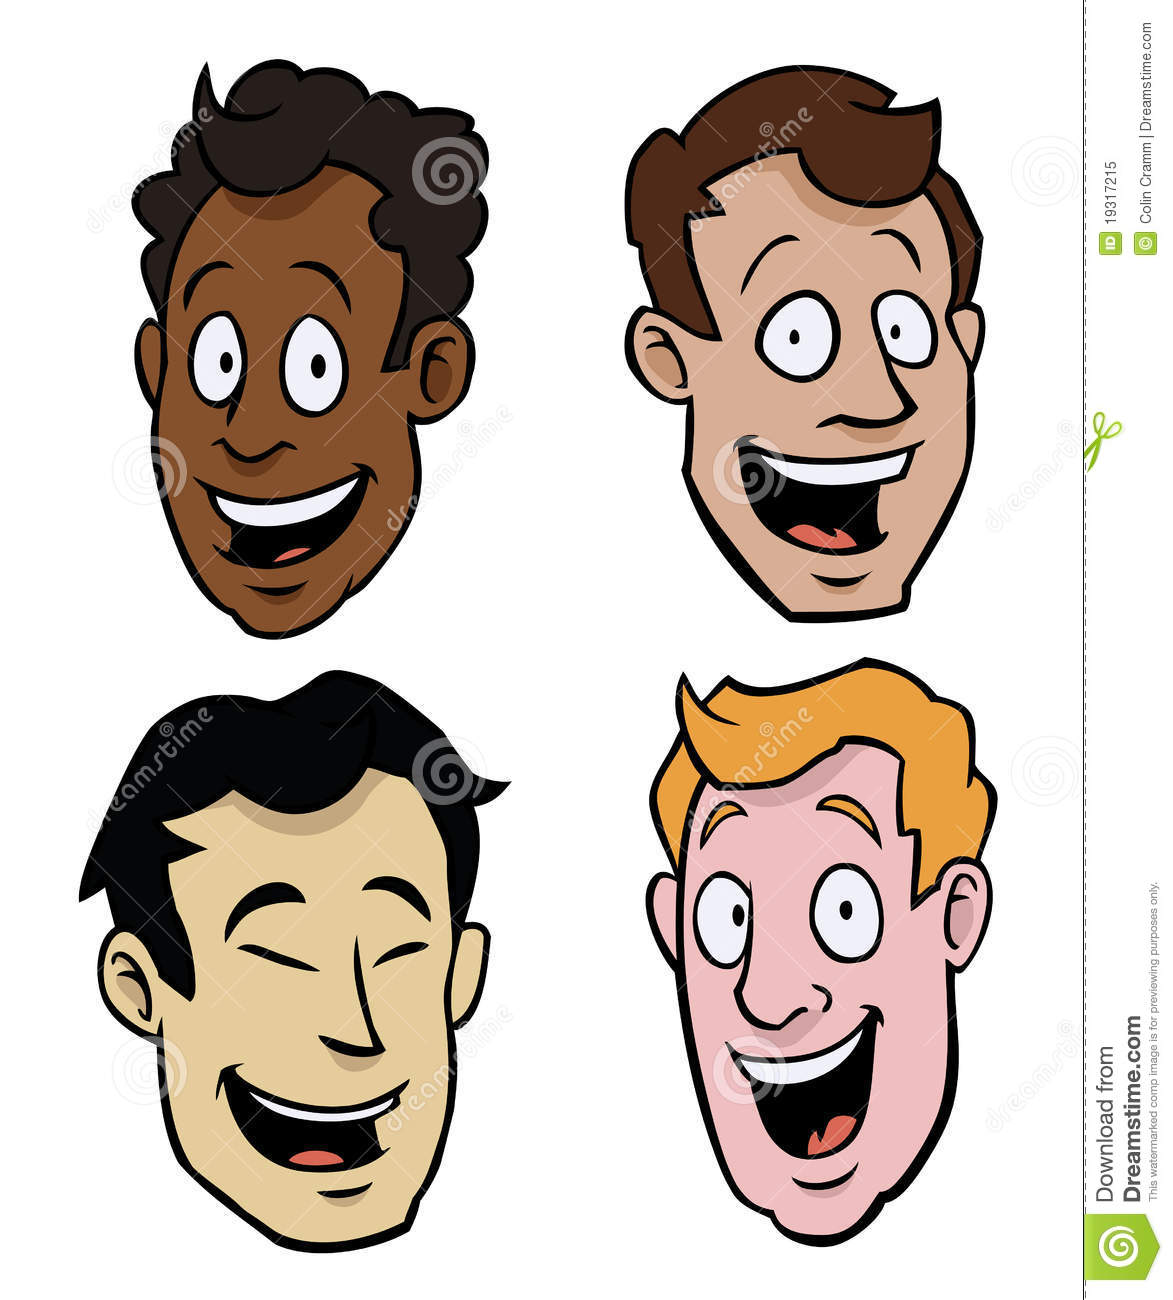 Various - Smiling Faces / Volvic